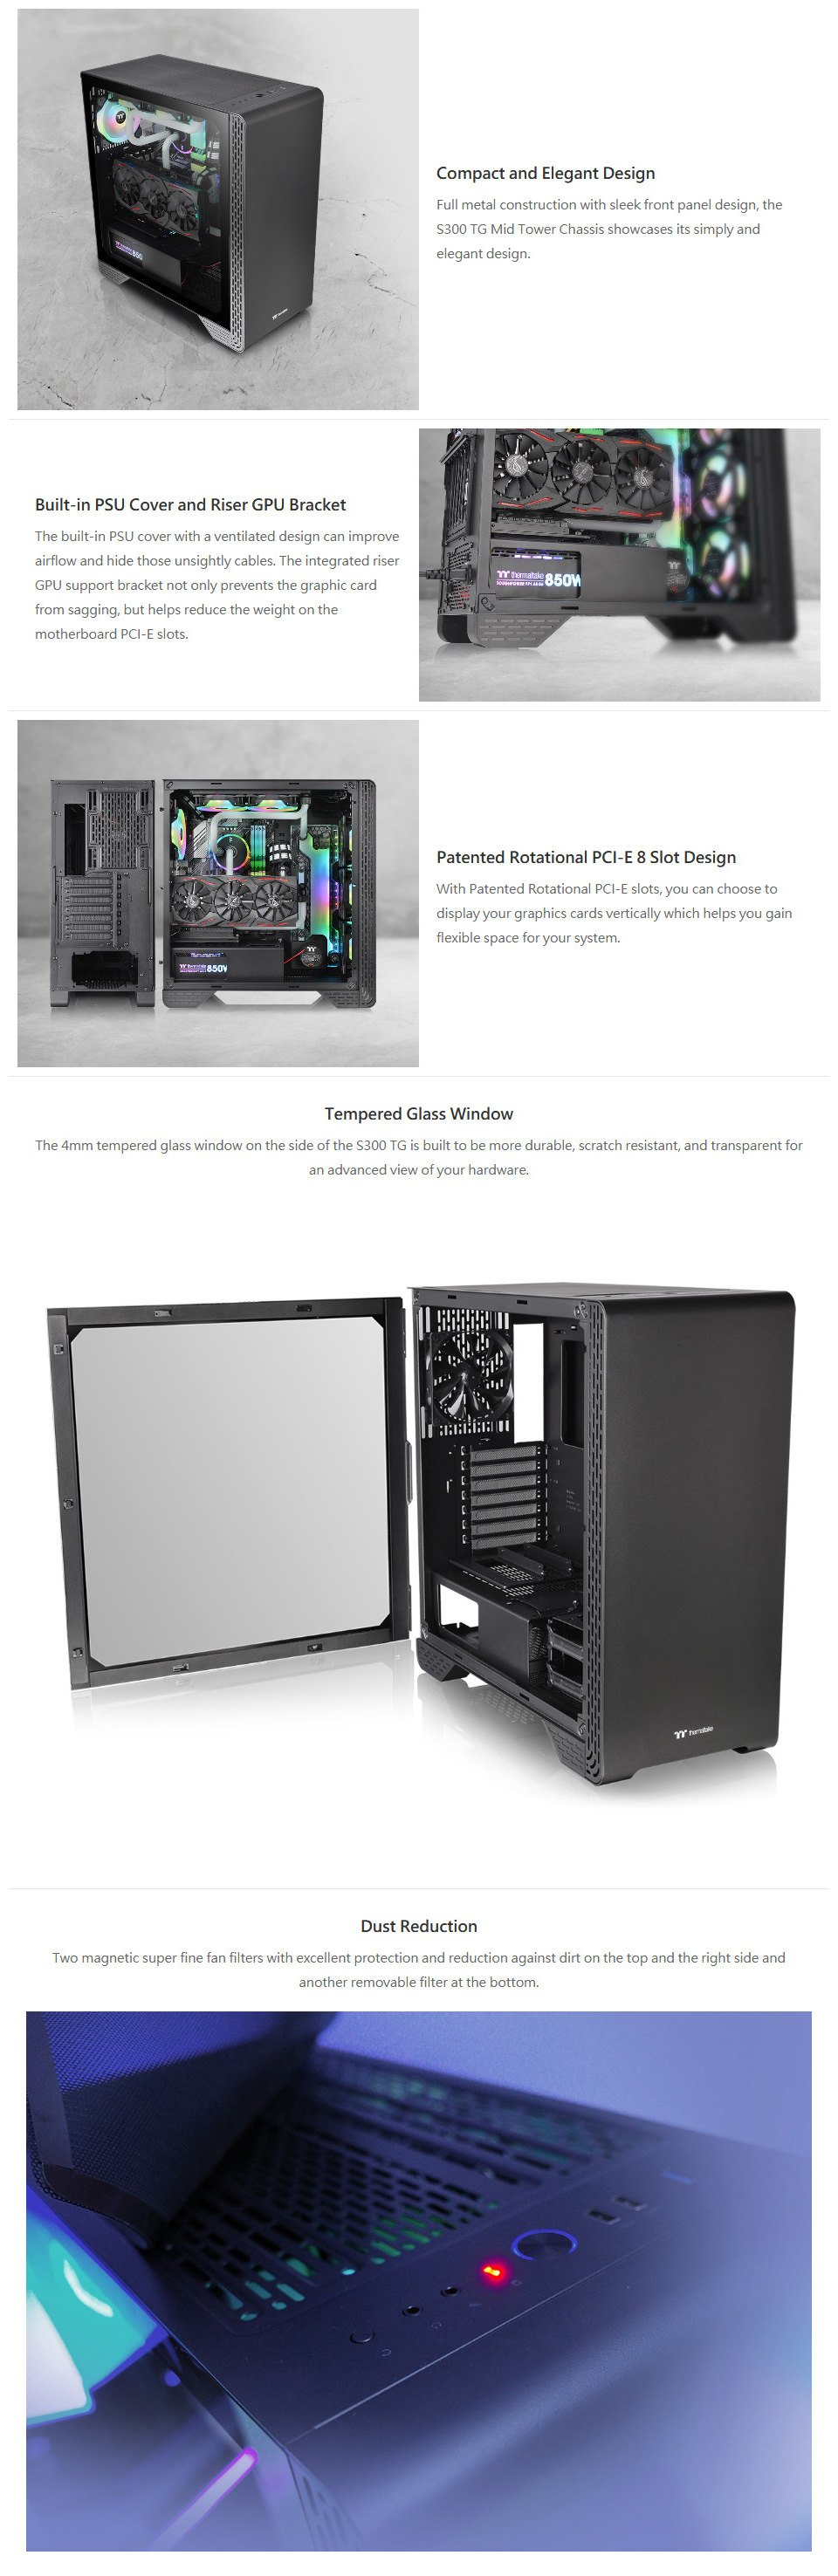 Thermaltake S300 Tempered Glass Mid-Tower Case Black Edition features 2